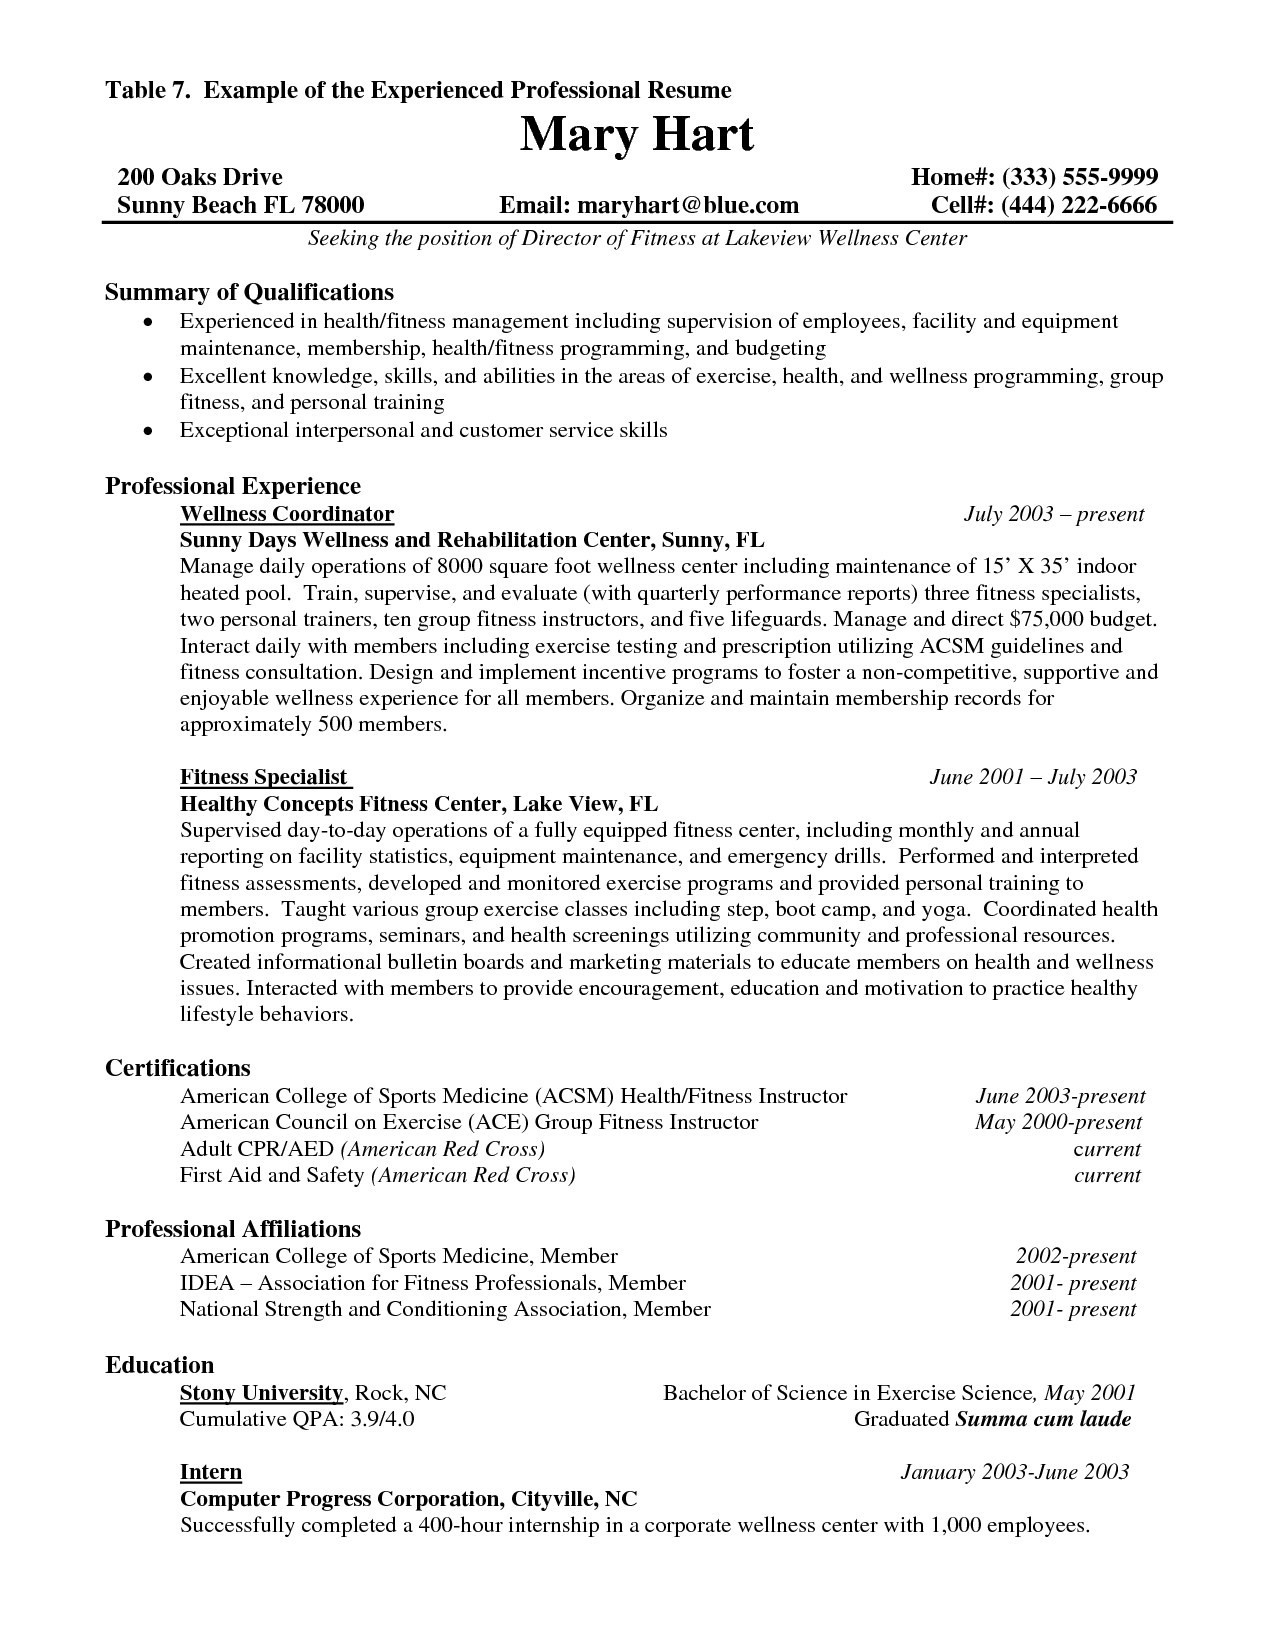 Cover Letter Template for Teaching assistant - Resume Template for College Graduate Ideas Accounting Internship